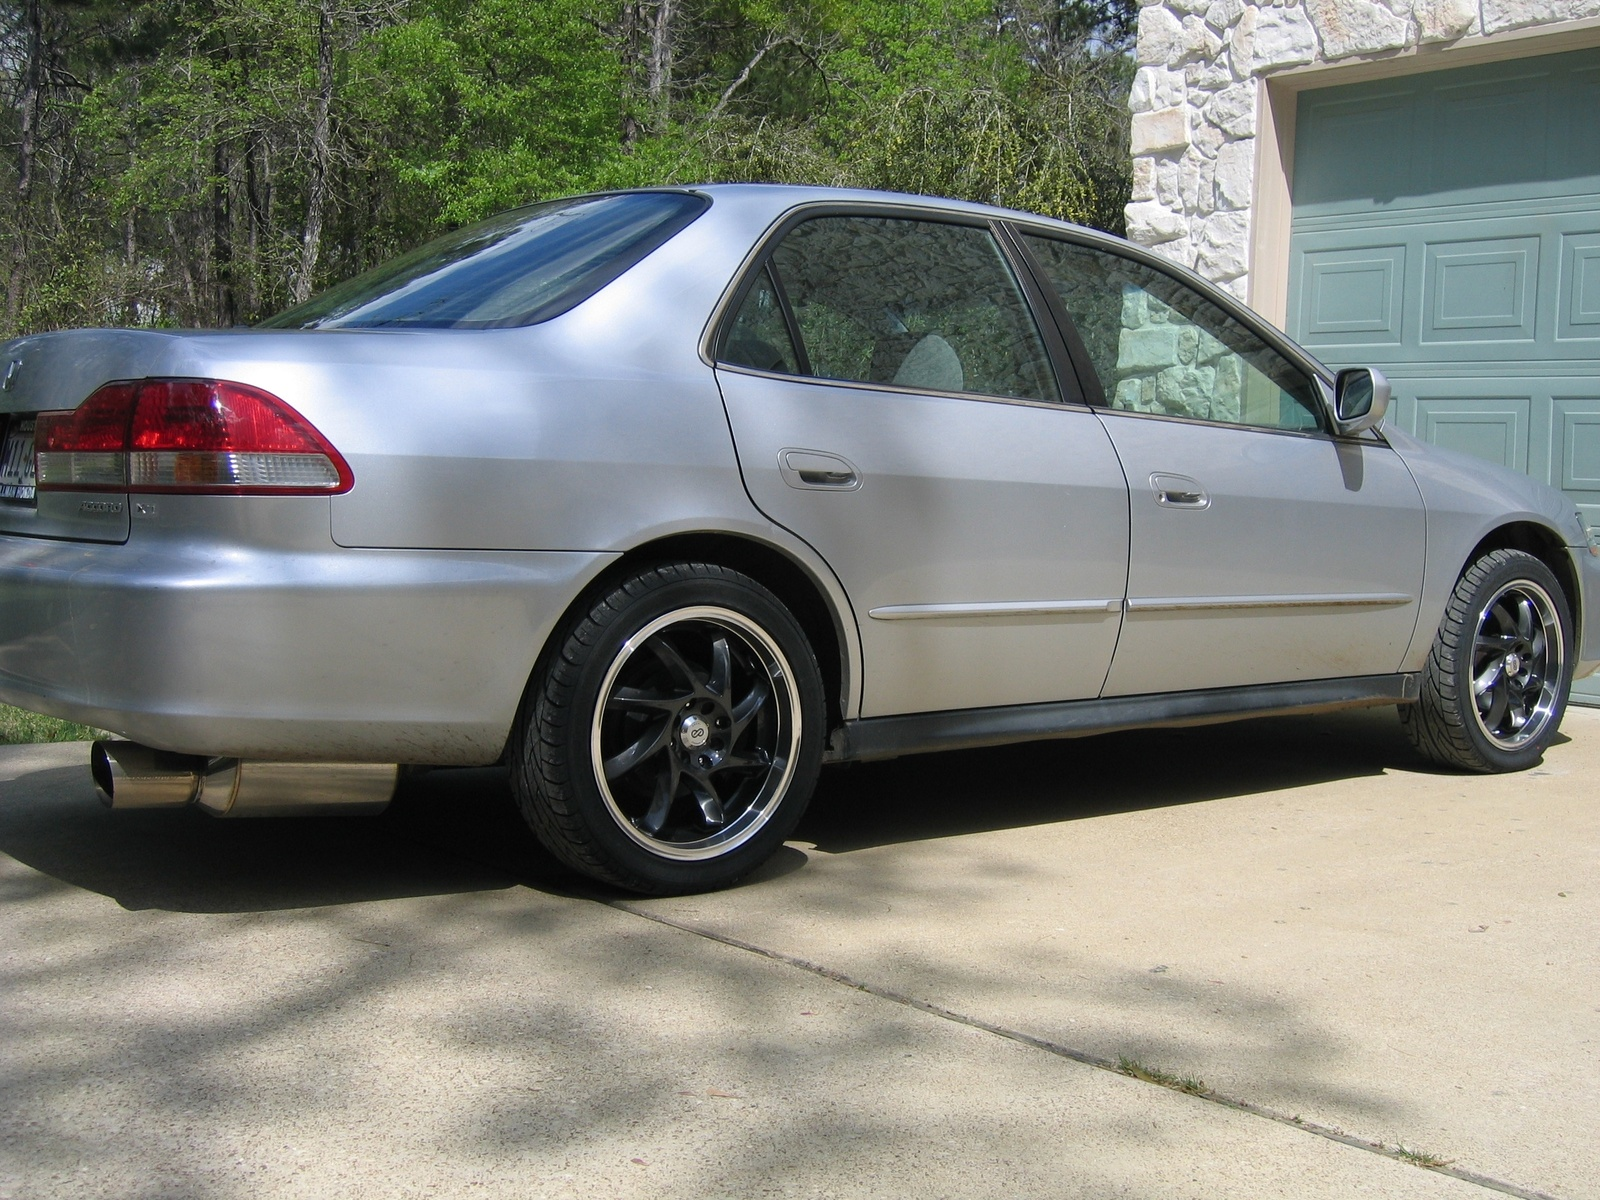 Picture of 2001 Honda Accord LX, exterior